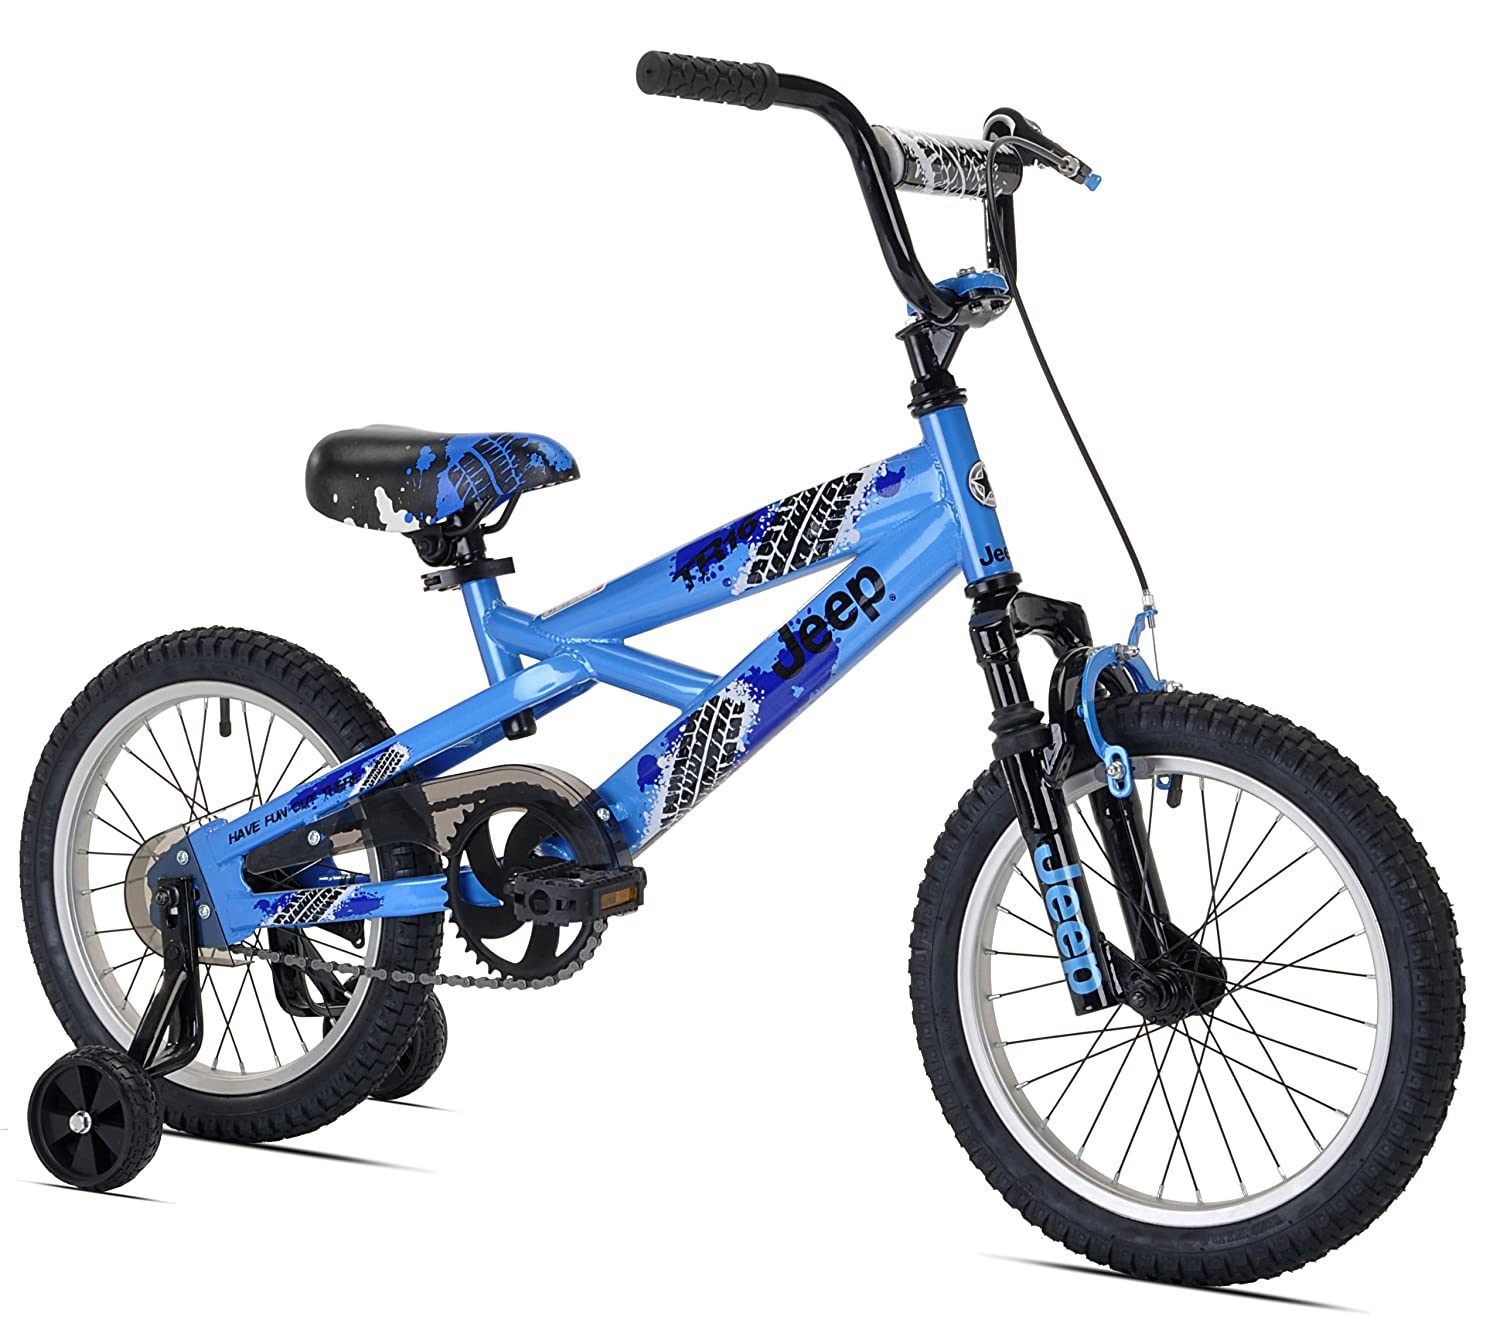 Bikes 16 Inch Jeep Boy s Bike Inch